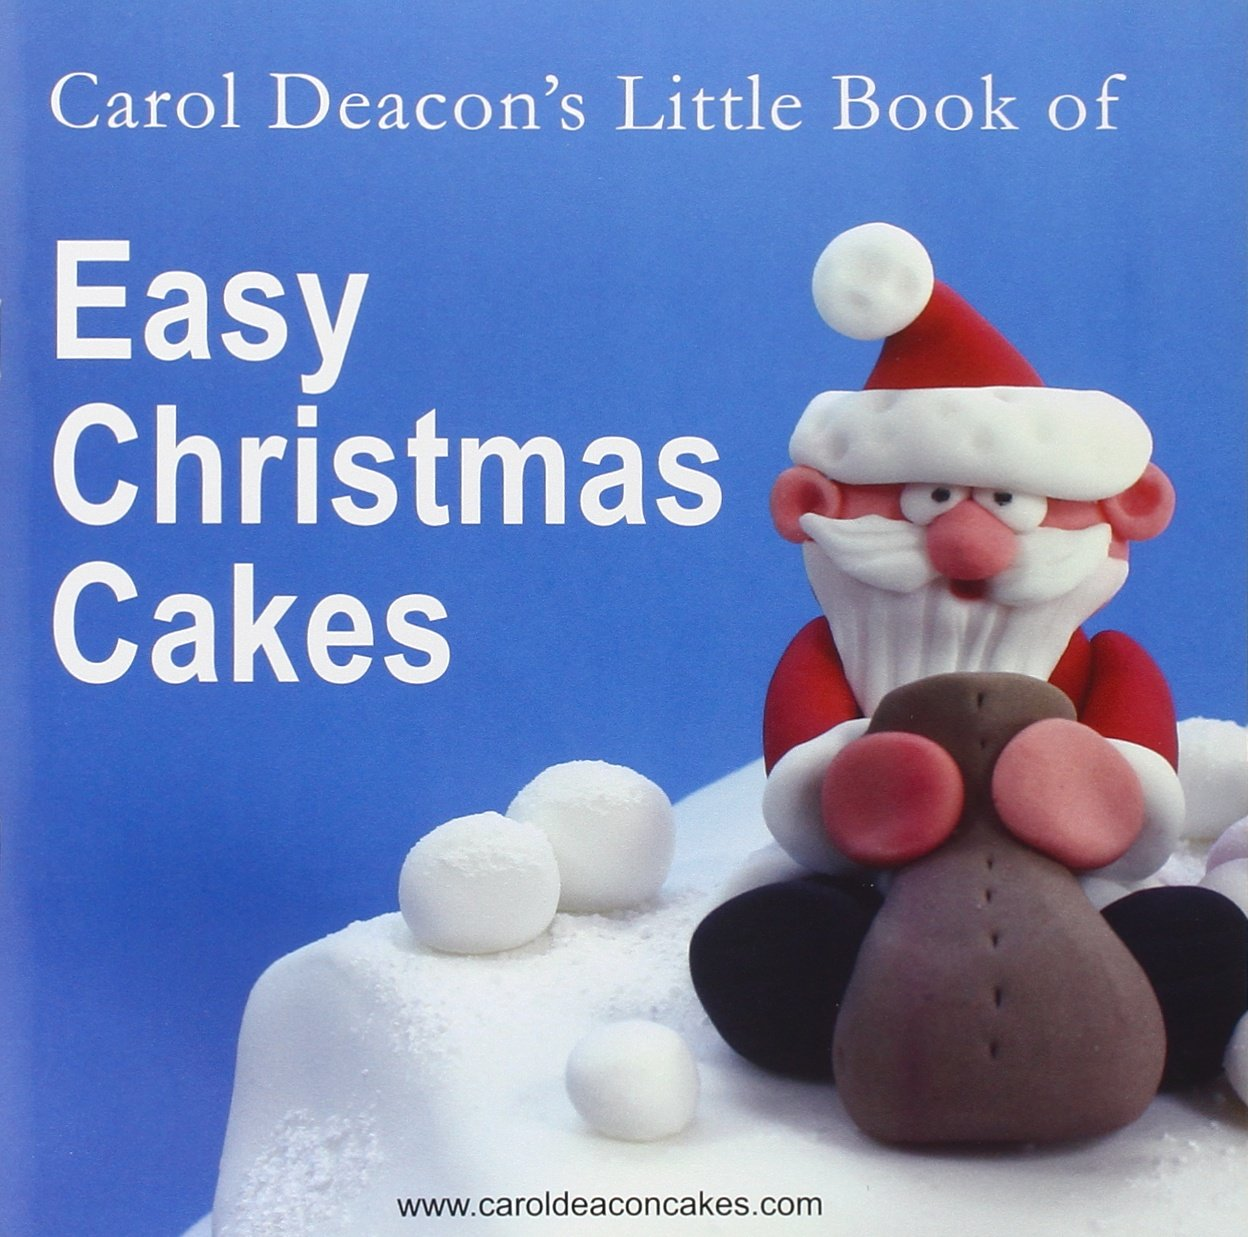 https://caroldeaconcakes.com/books/little-book-of-easy-christmas-cakes-paperback-1-oct-2007/